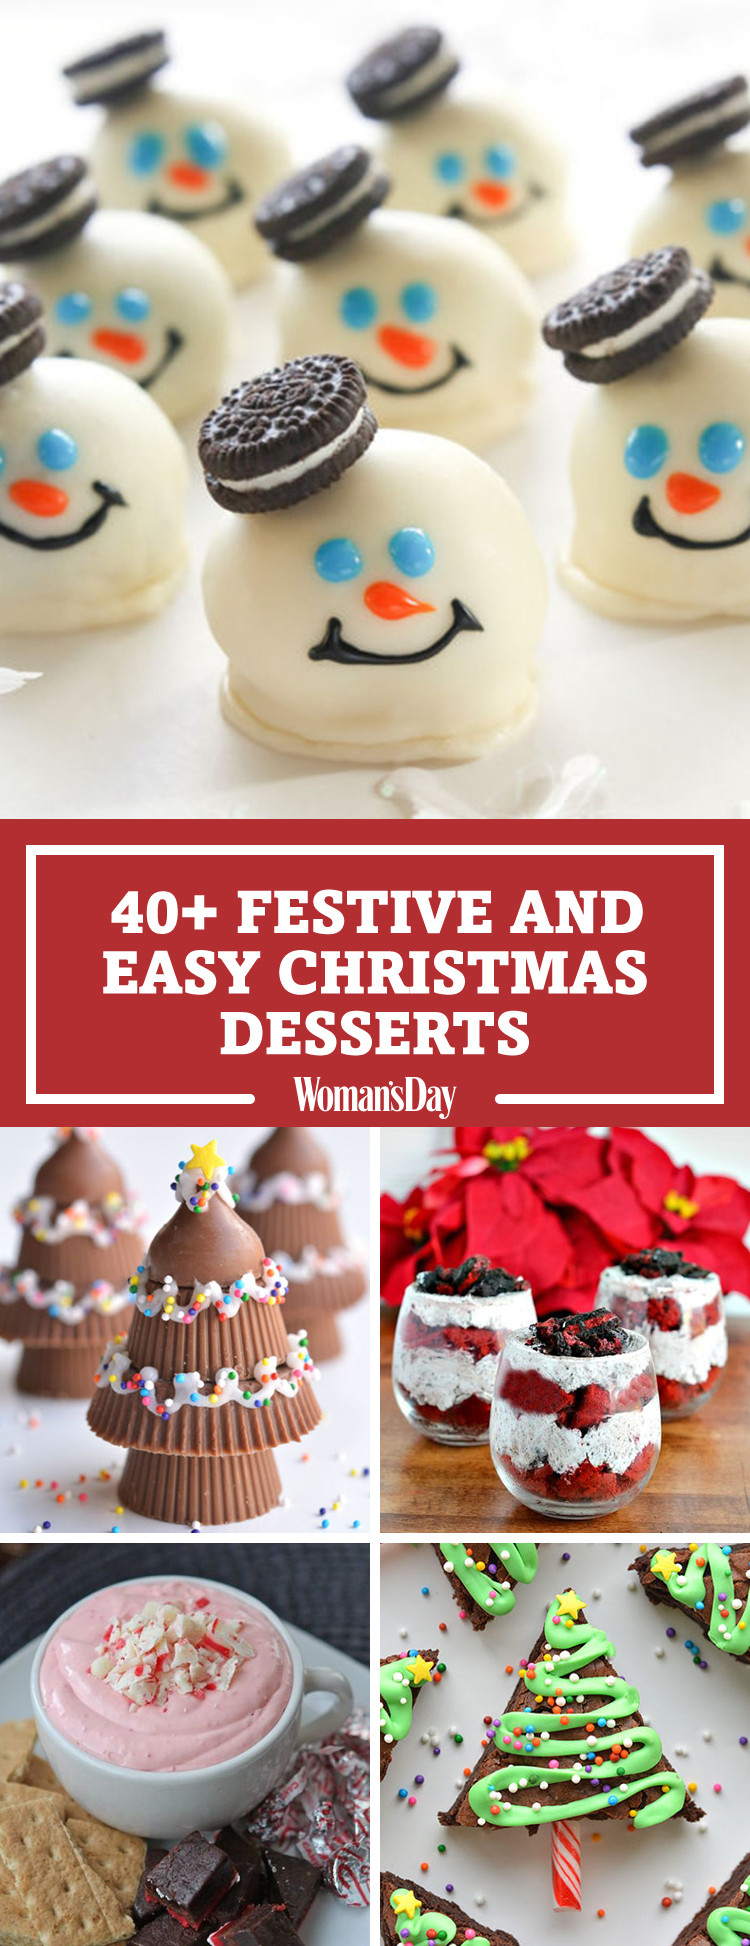 Traditional Christmas Desserts  57 Easy Christmas Dessert Recipes Best Ideas for Fun